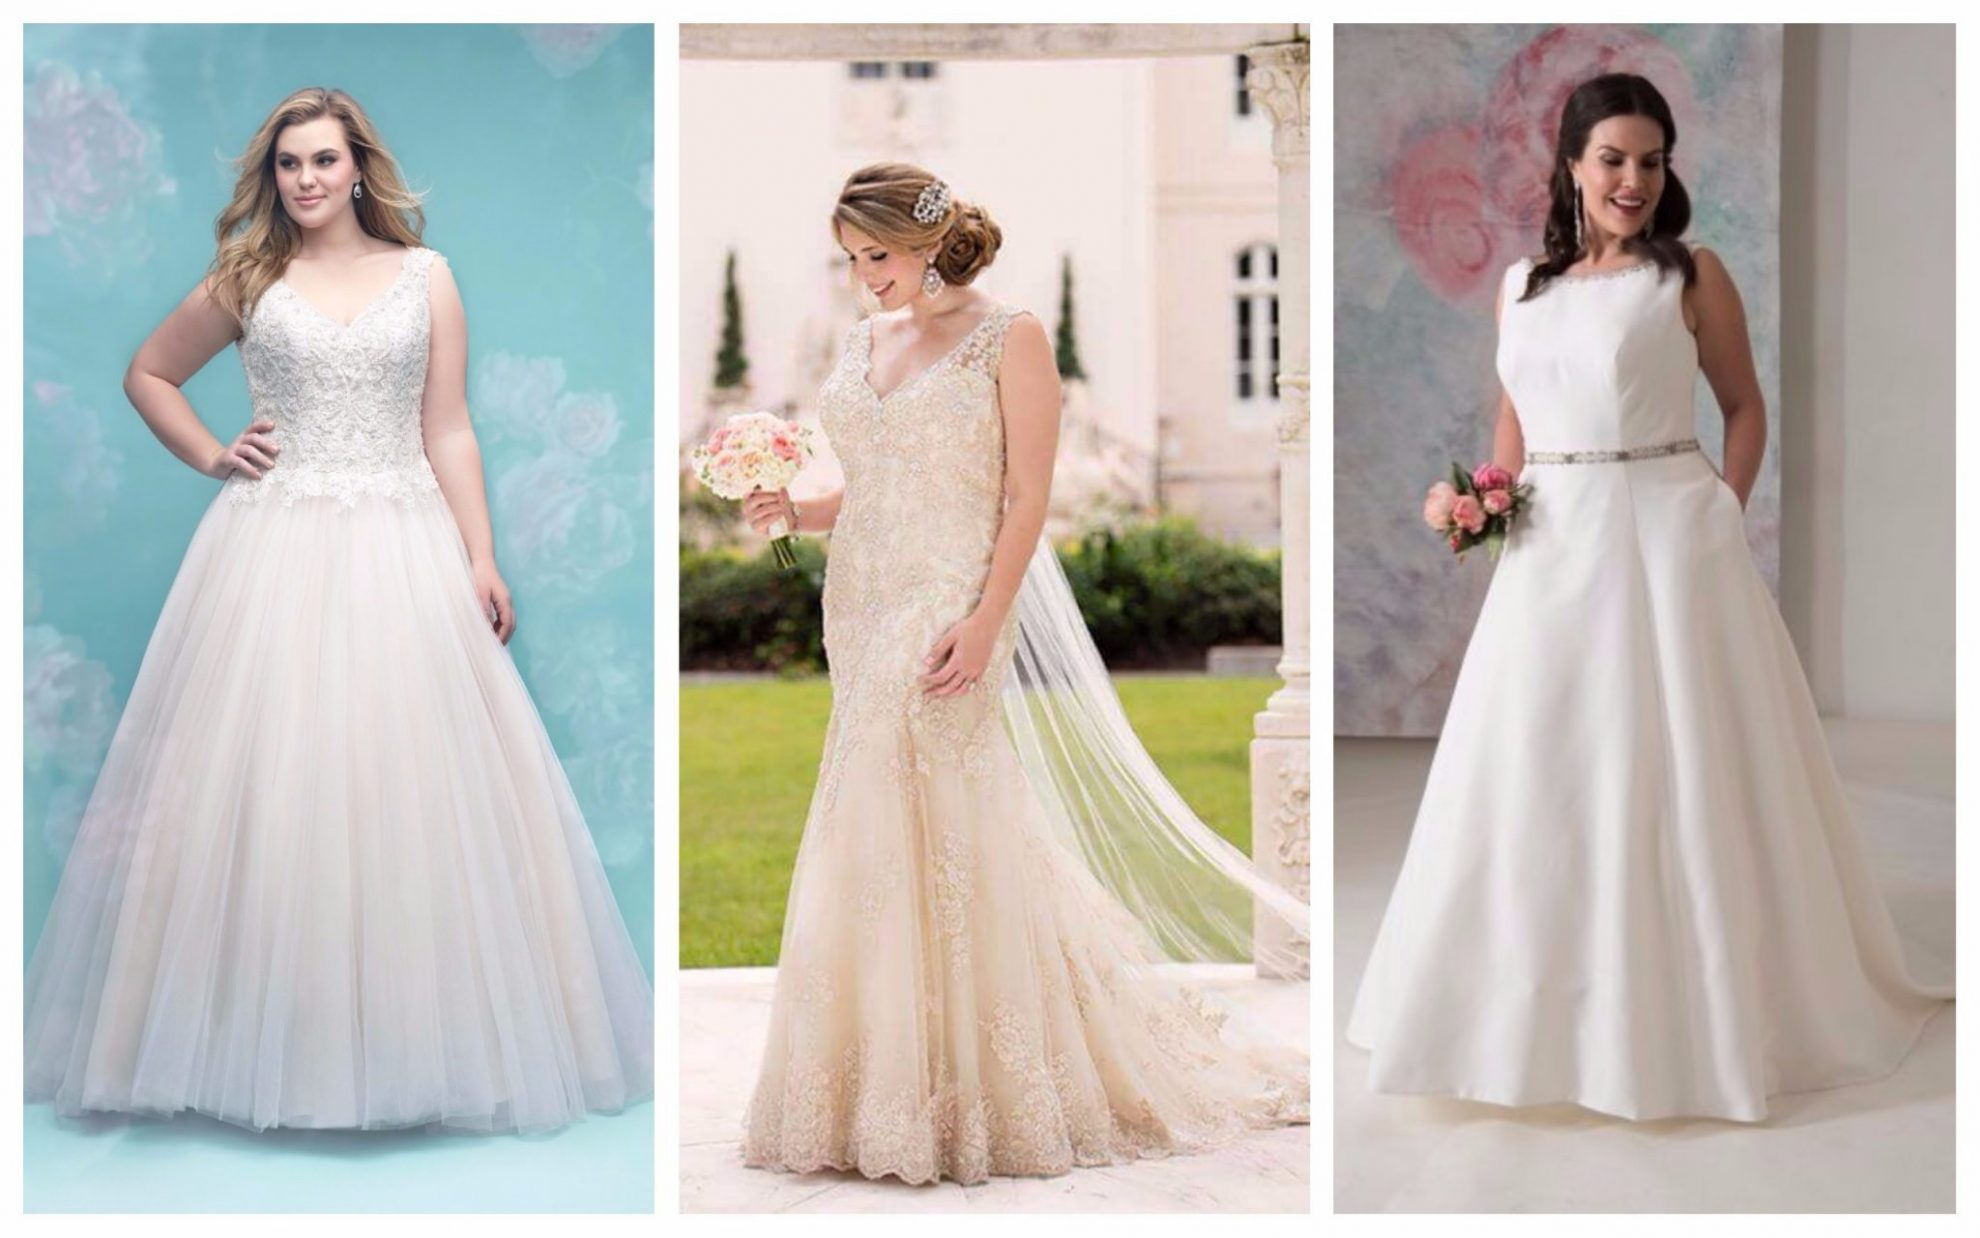 Flattering Tips For The Plus Size Bride Wedding Journal,Plus Size Long Sleeve Wedding Guest Dresses